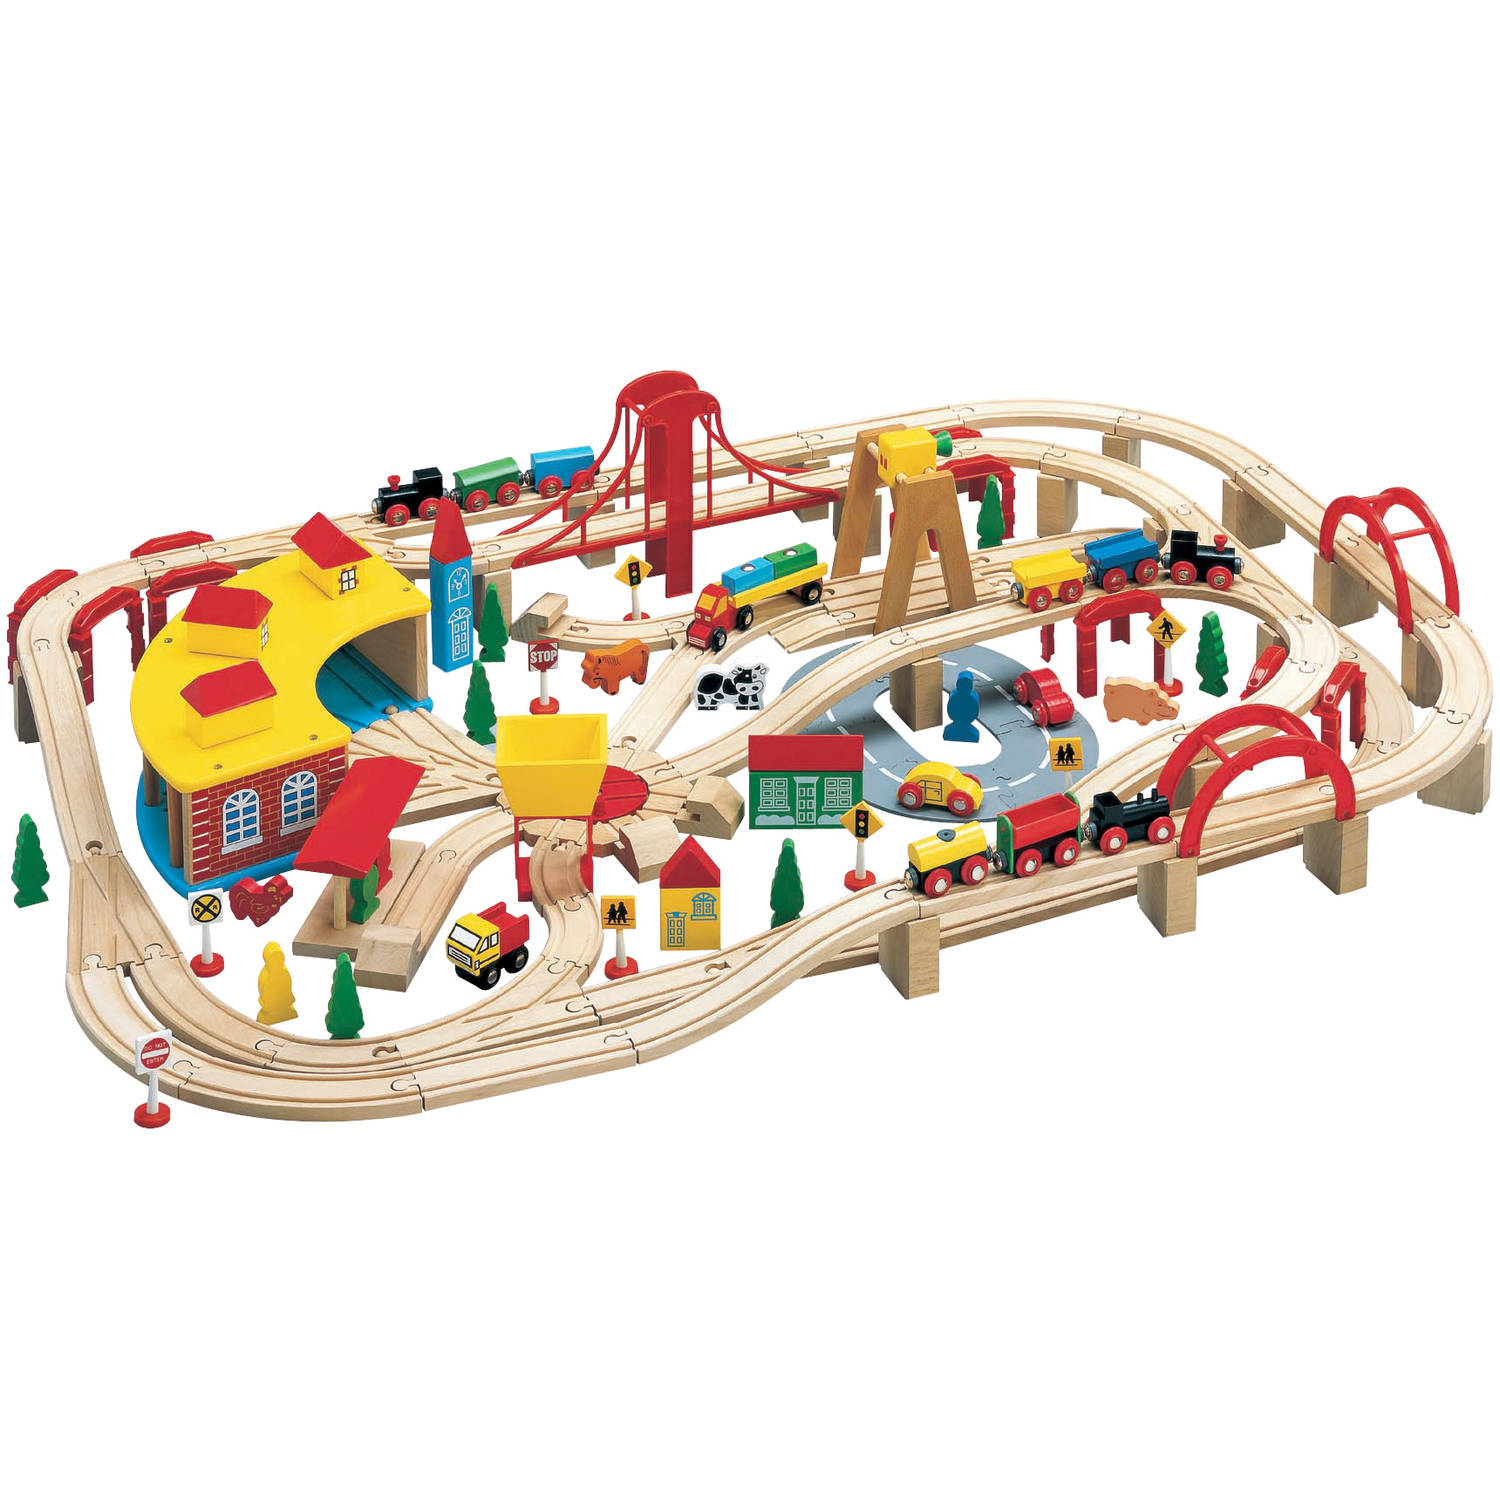 Wooden Train Play Set, 145-Piece